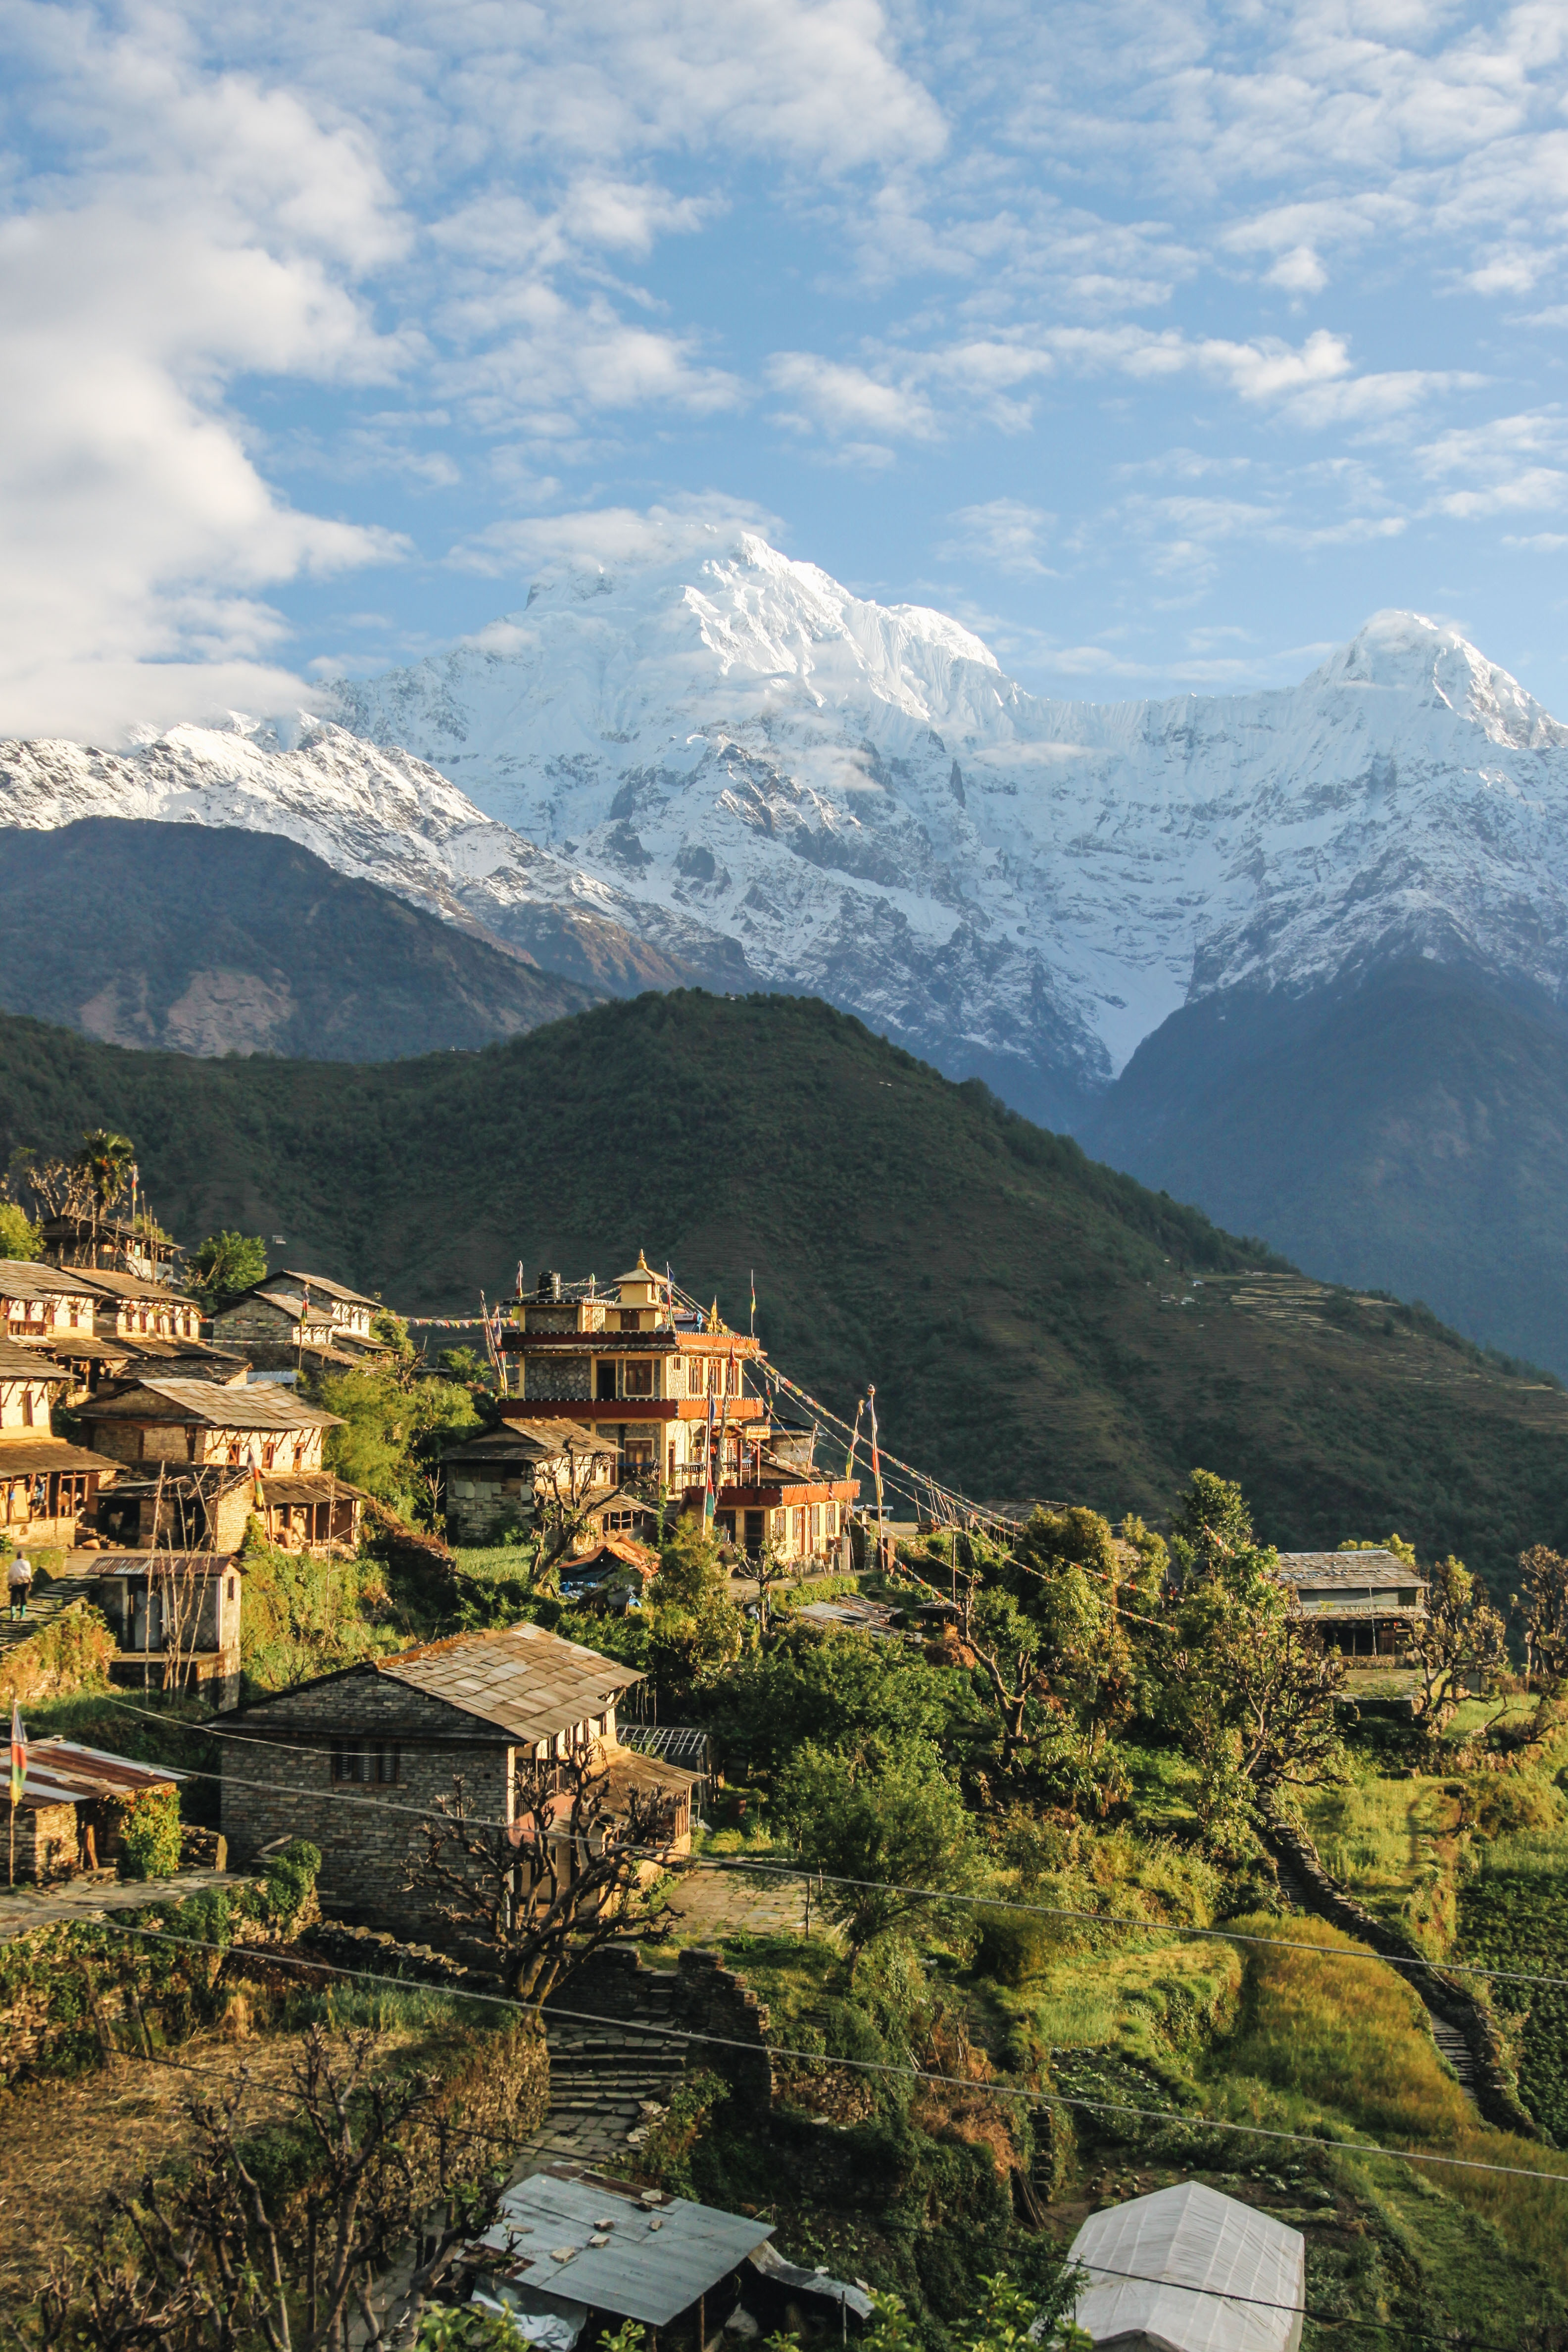 Stunning mountain town -Annapurna, Narchyang, Nepal- Photo by: Giuseppe Mondì